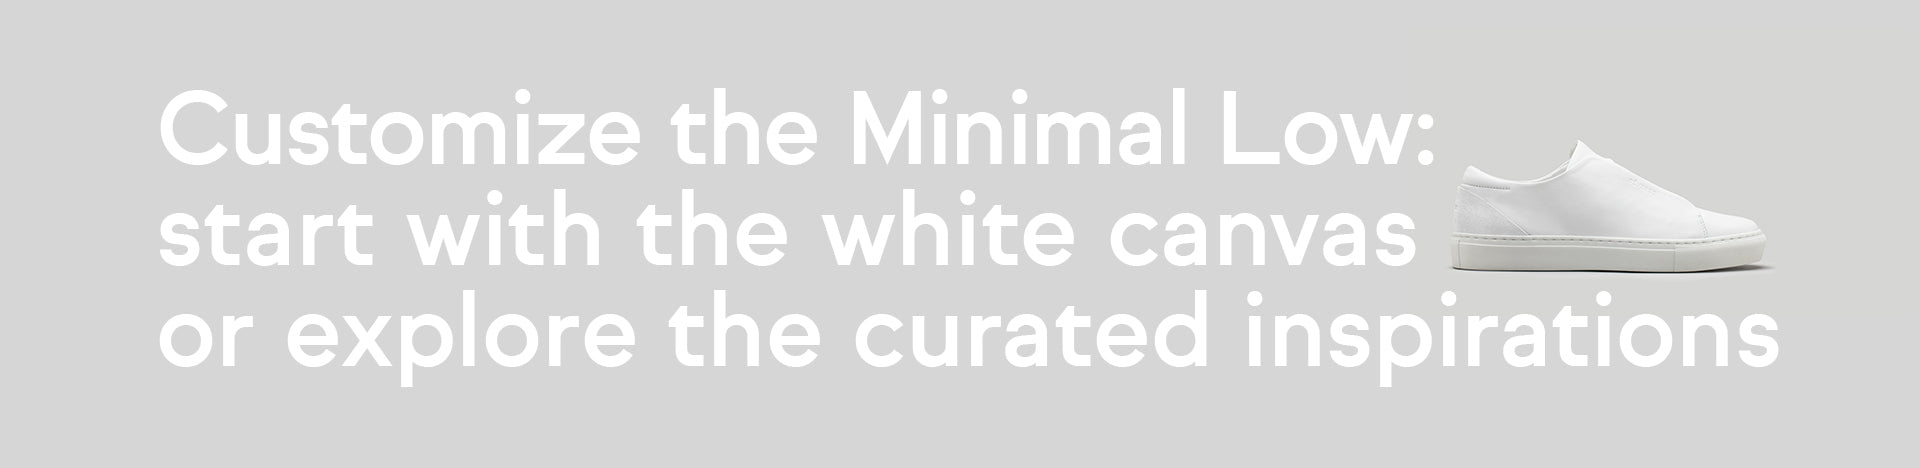 How to customize the DiVERGE Minimal low sneaker: white canvas or inspirations